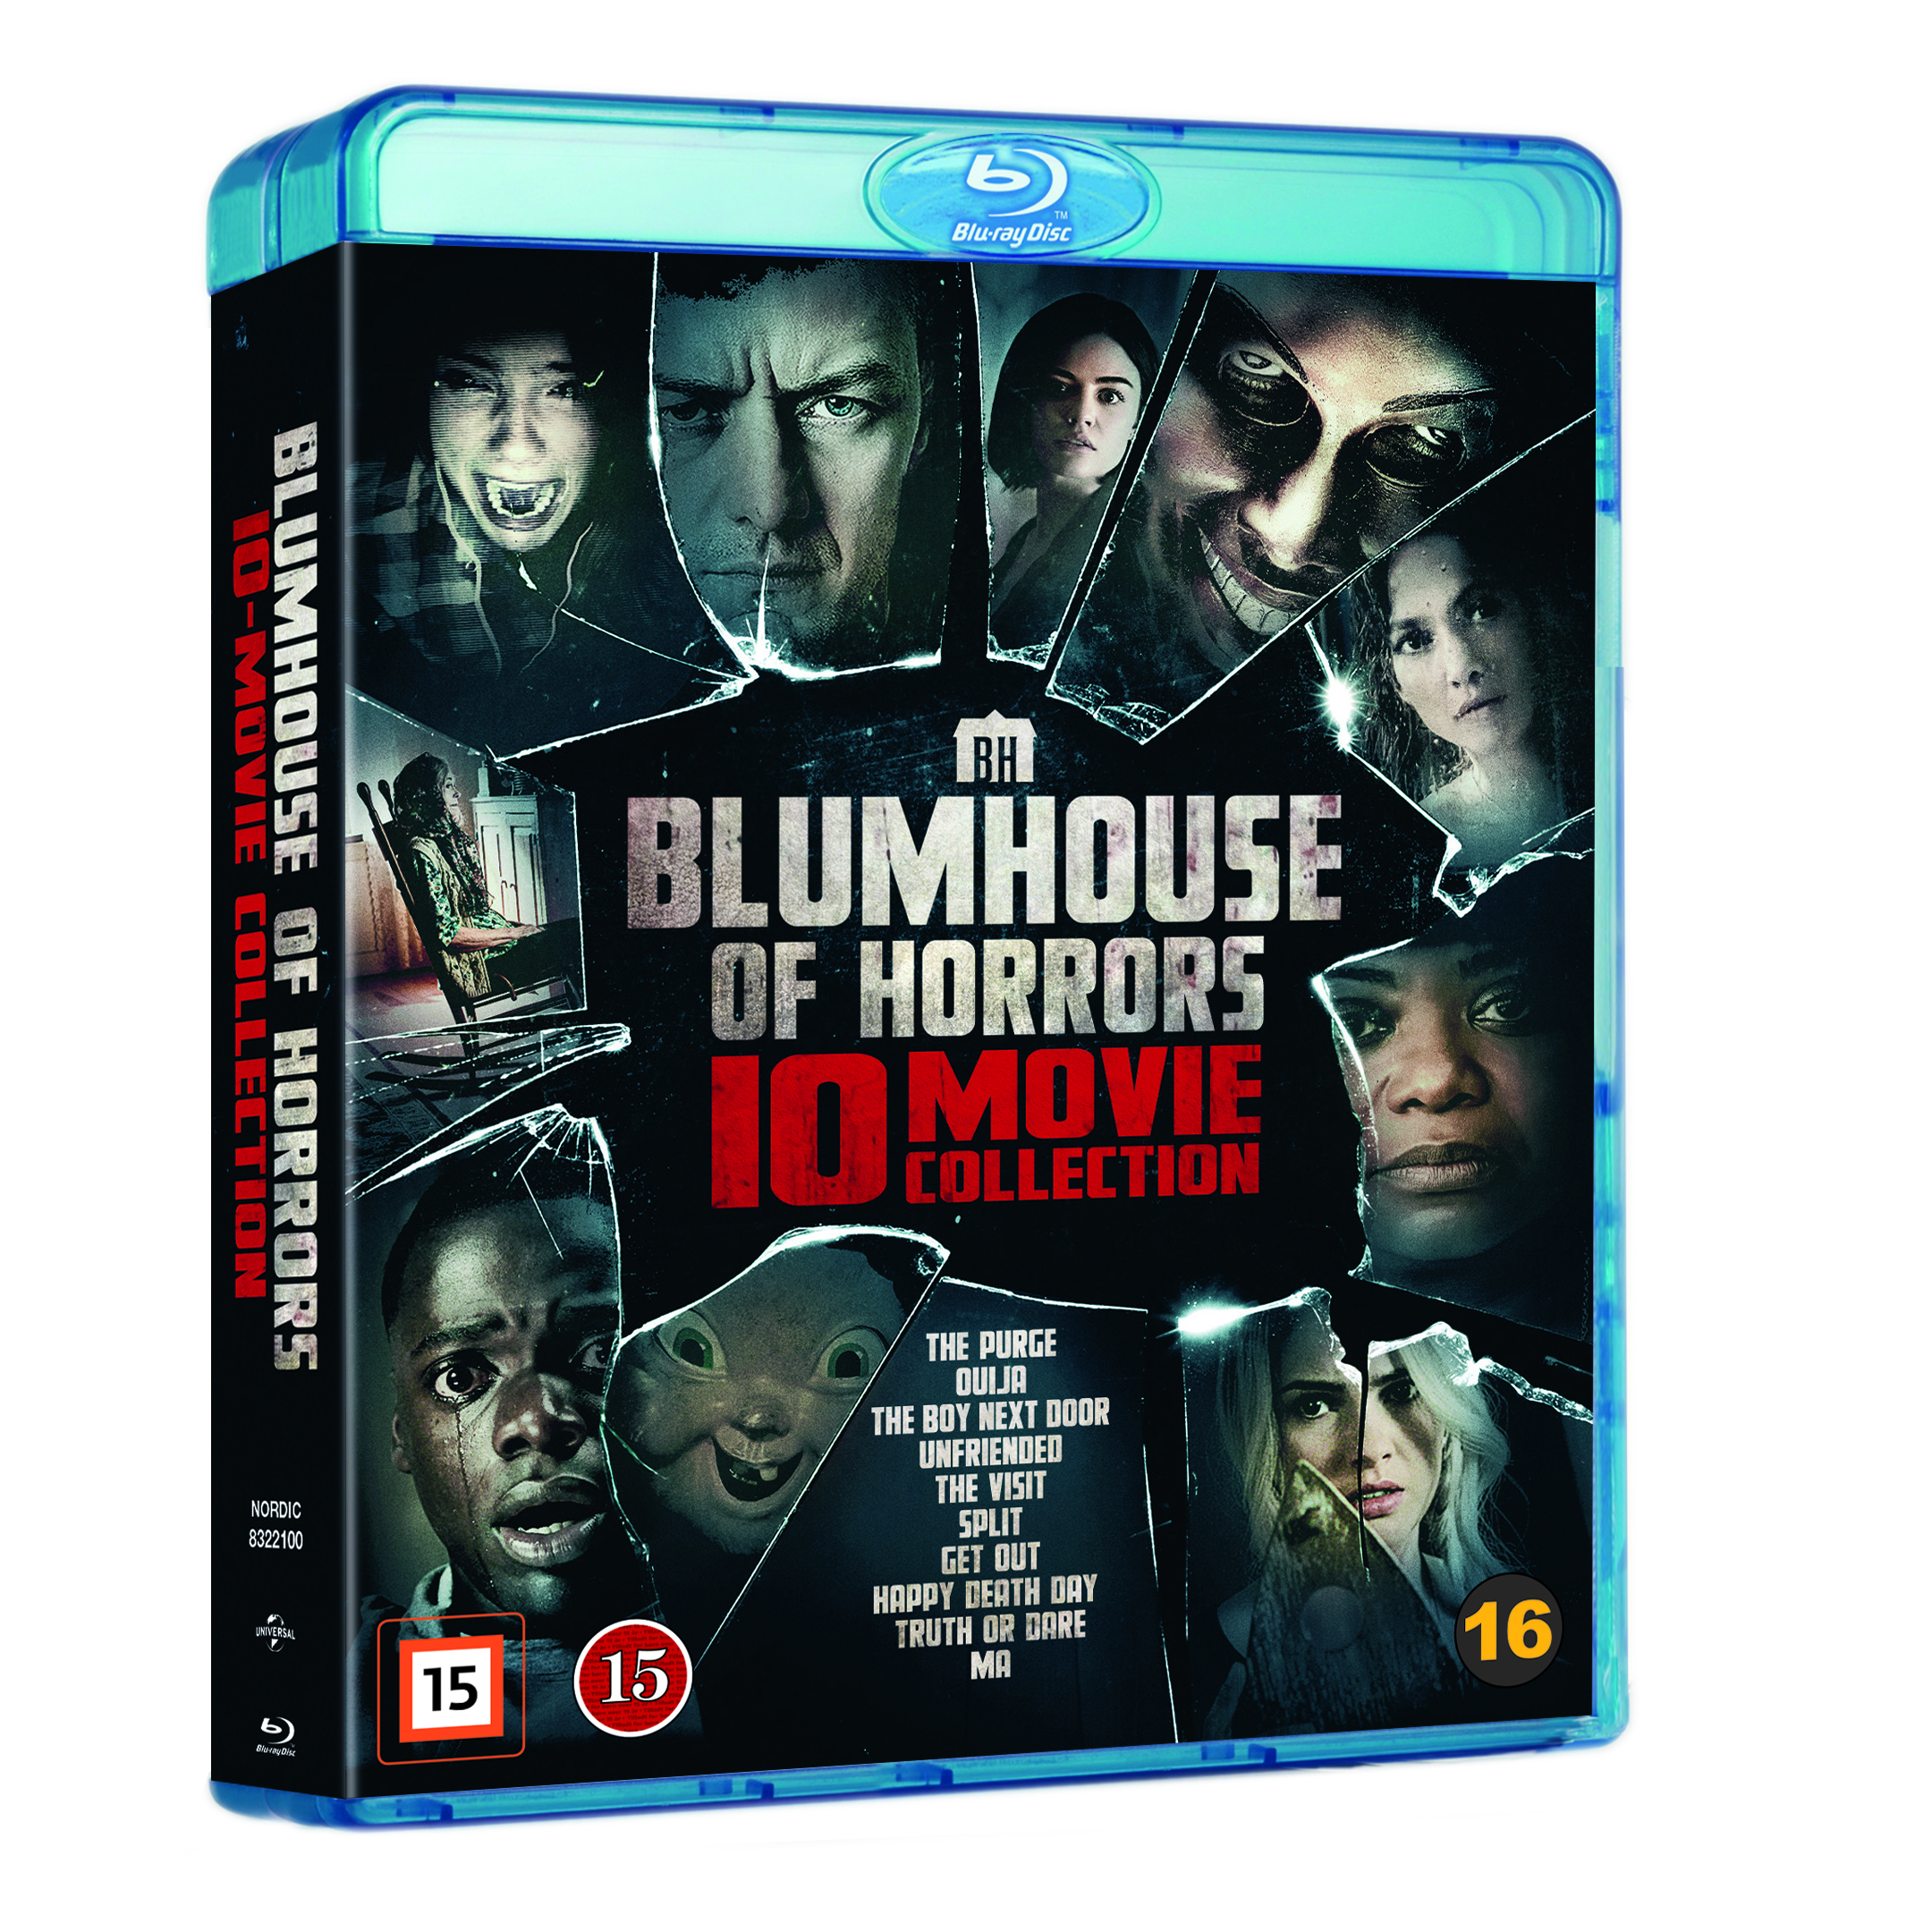 Blumhouse Of Horrors – 10 Movie Coll- Blu ray